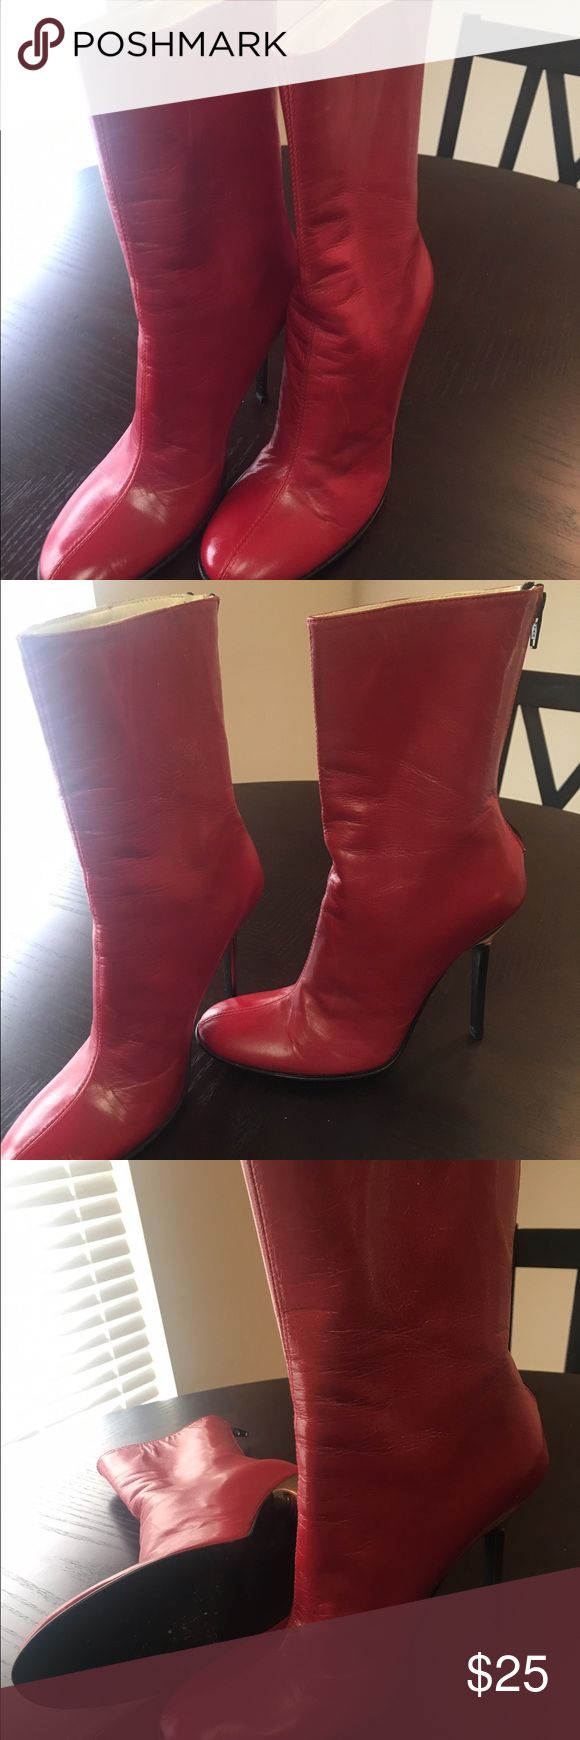 Women Charles David red calf high boots Size 5 red leather with gold stilettos heels. Excellent condition. No scratches. Only worn one time. Charles David Shoes Ankle Boots & Booties